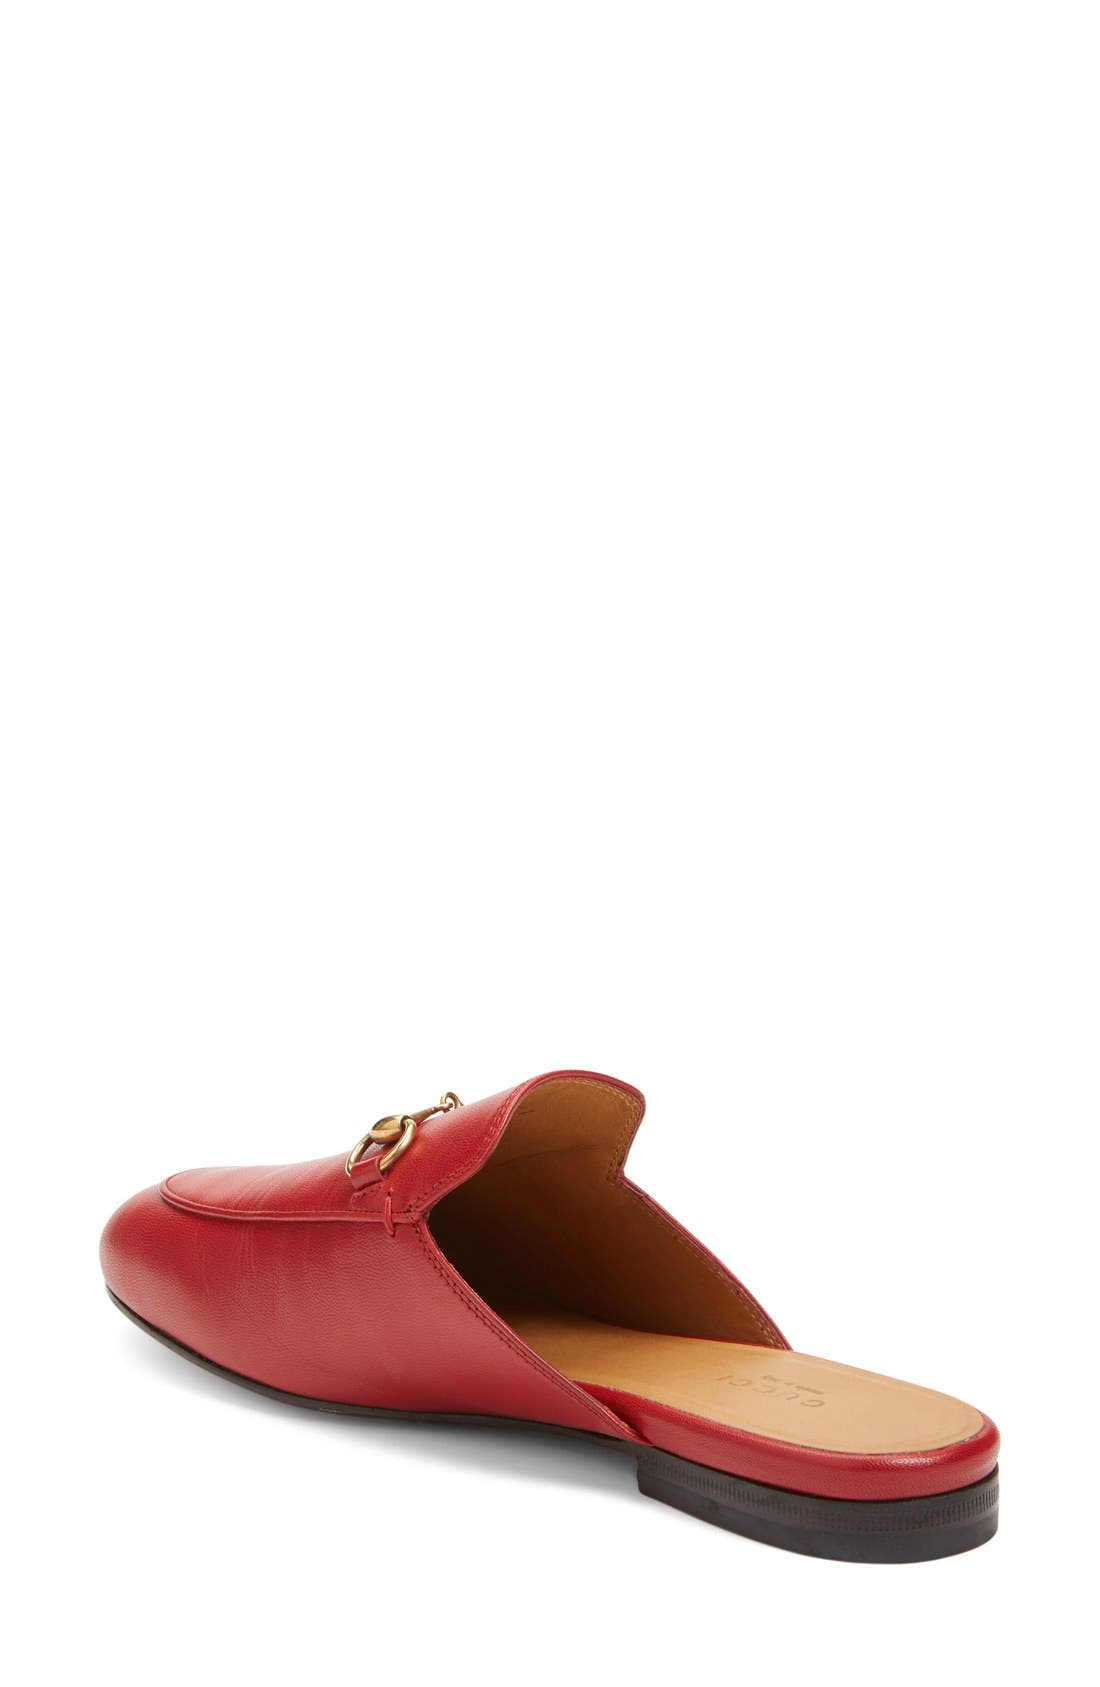 GUCCI, Princetown Loafer Mule, Alternate thumbnail 2, color, RED LEATHER